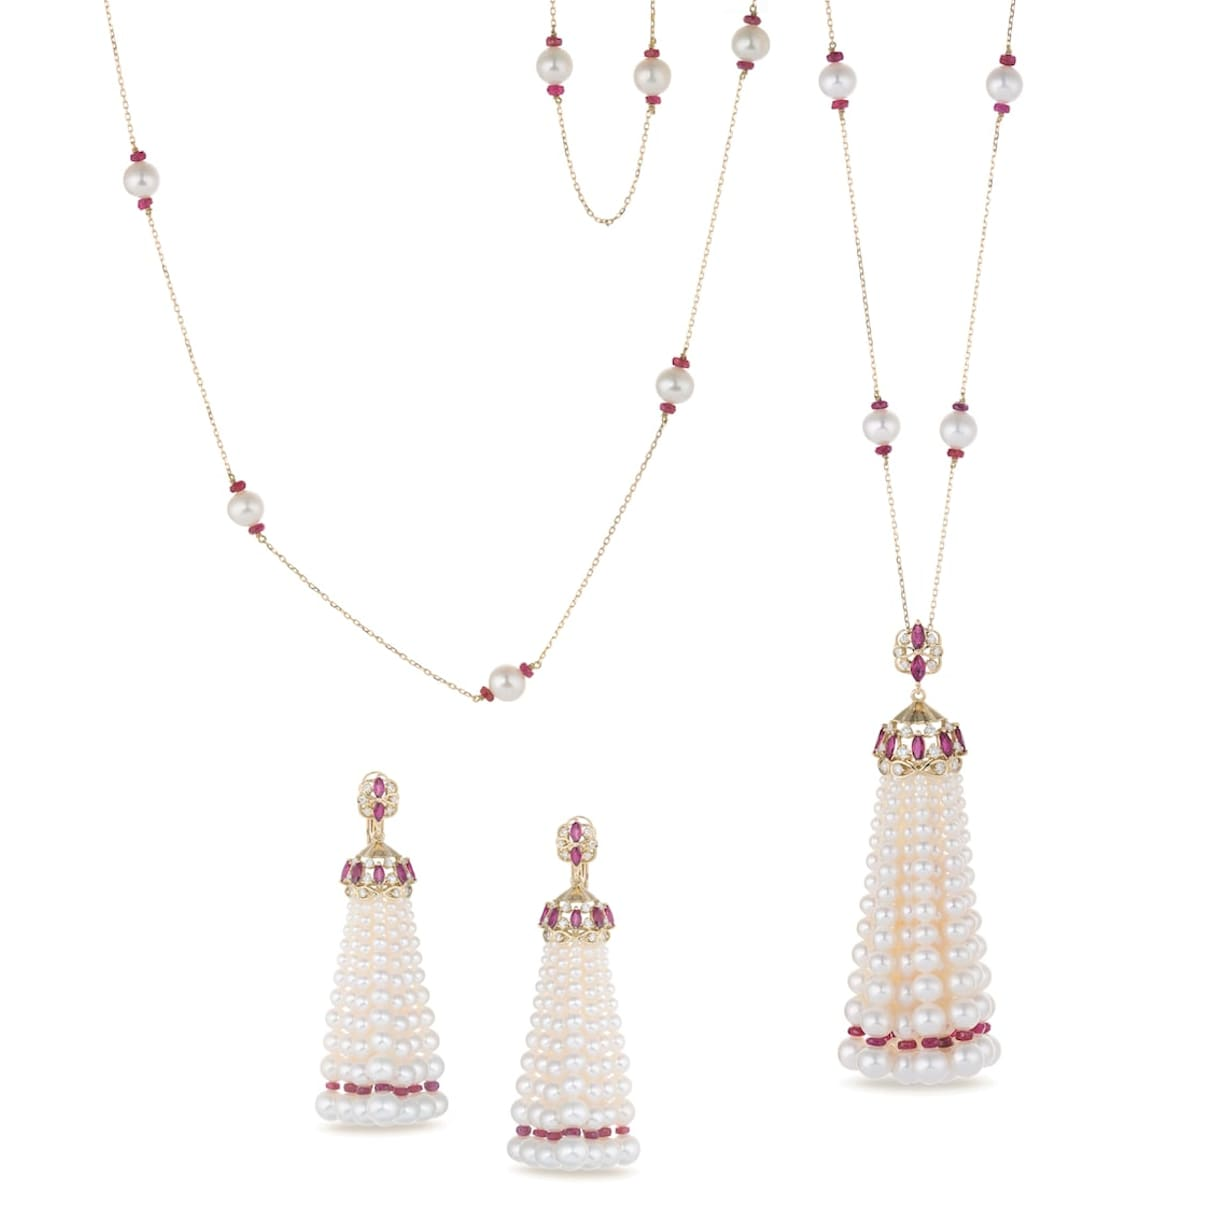 Tassel-necklace-and-earrings-from-Cara-Jewellers-set-with-pearls-diamonds-and-rubies1